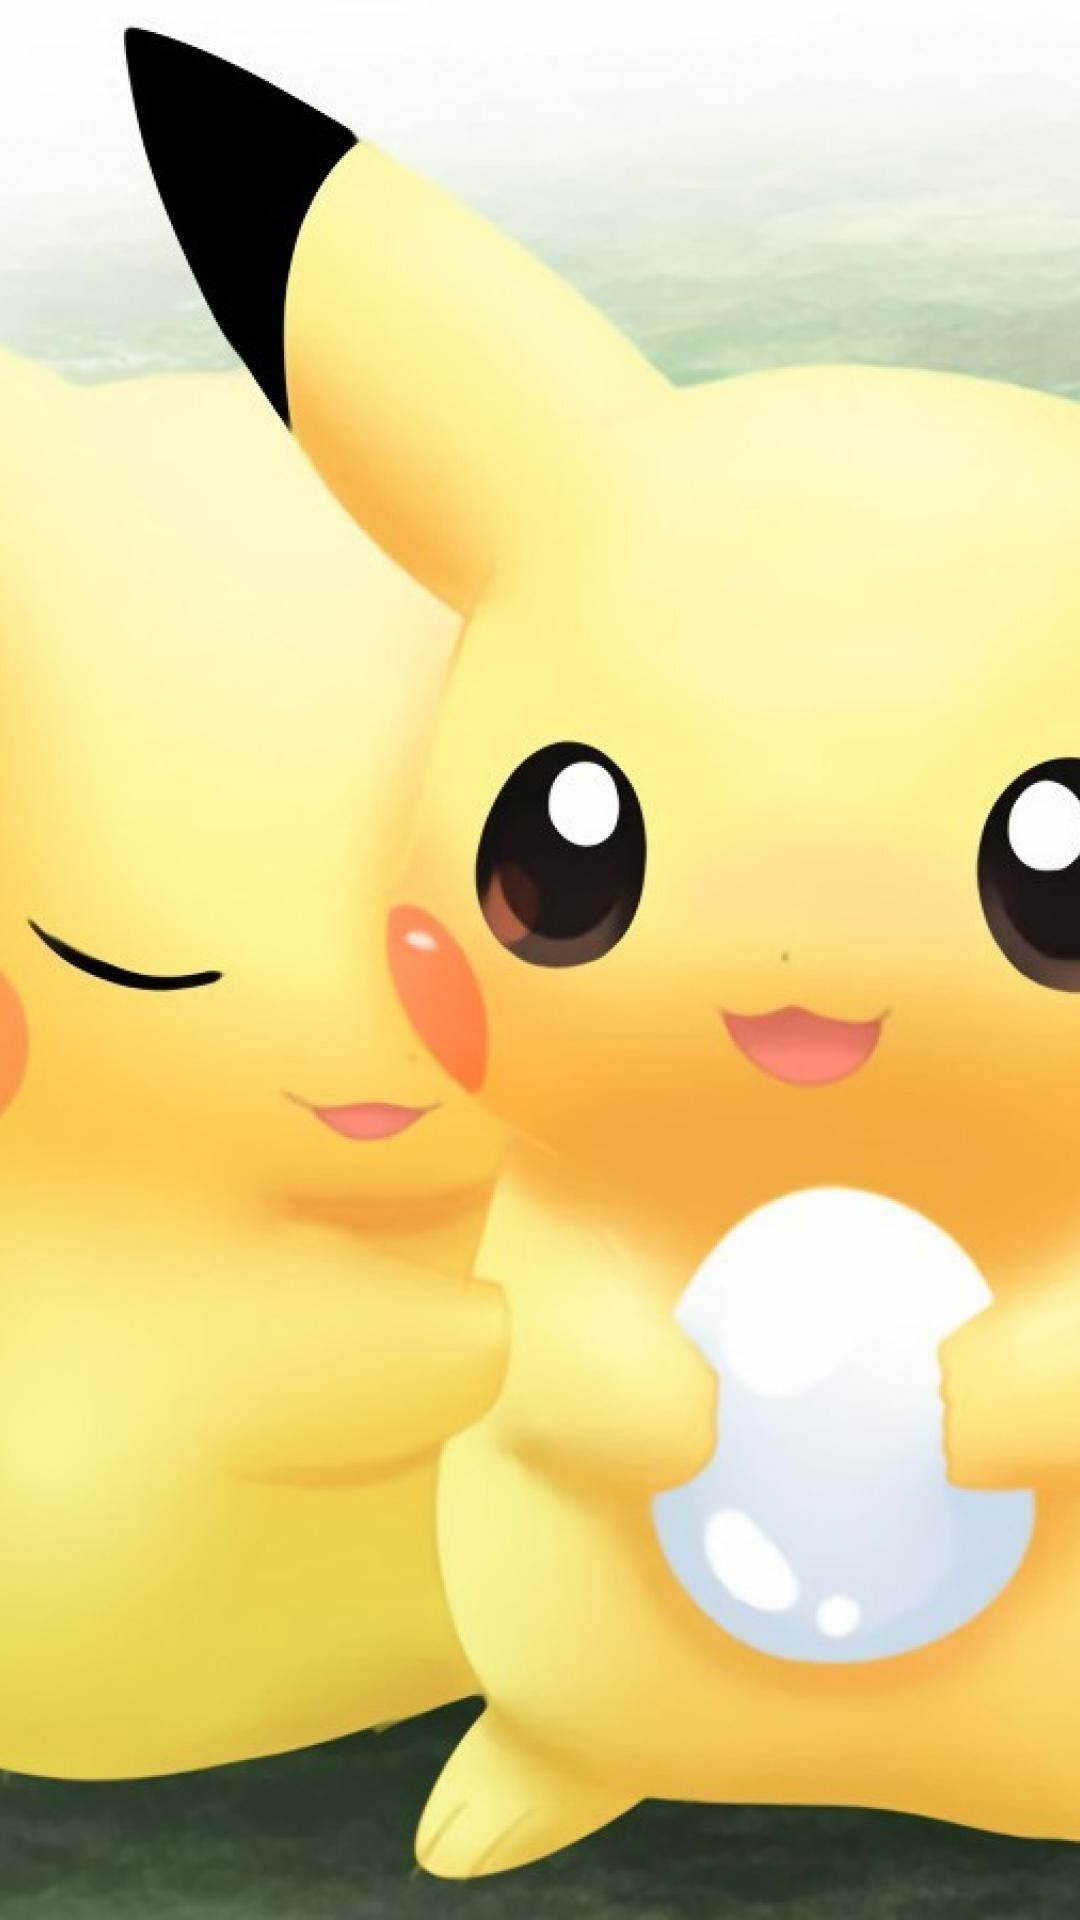 Girly Iphone 7 Wallpaper Cool Pikachu Wallpapers 77 Images